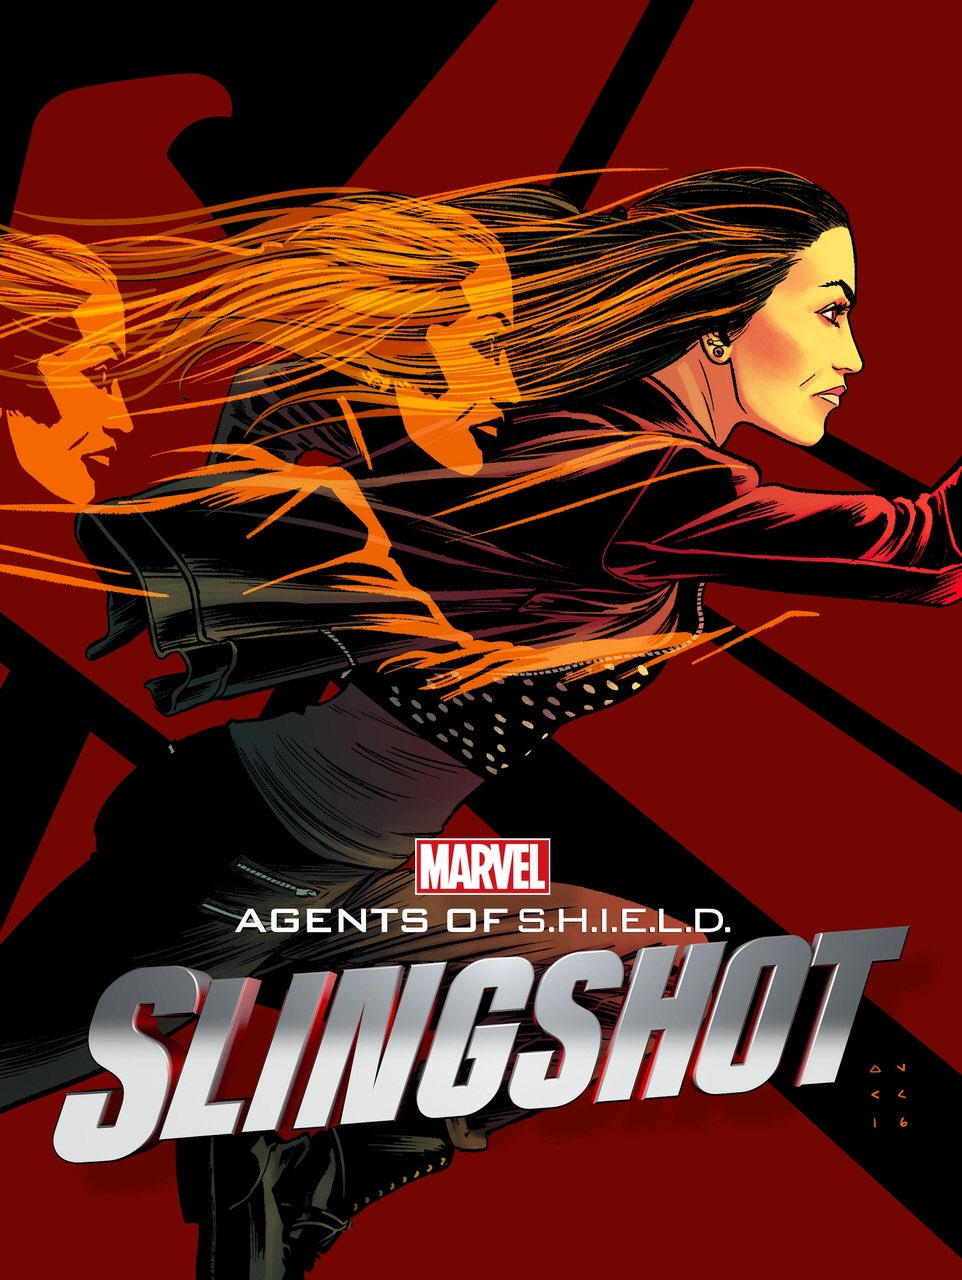 Agents of SHIELD Slingshot Season 1 Download Complete 480p WEBRip